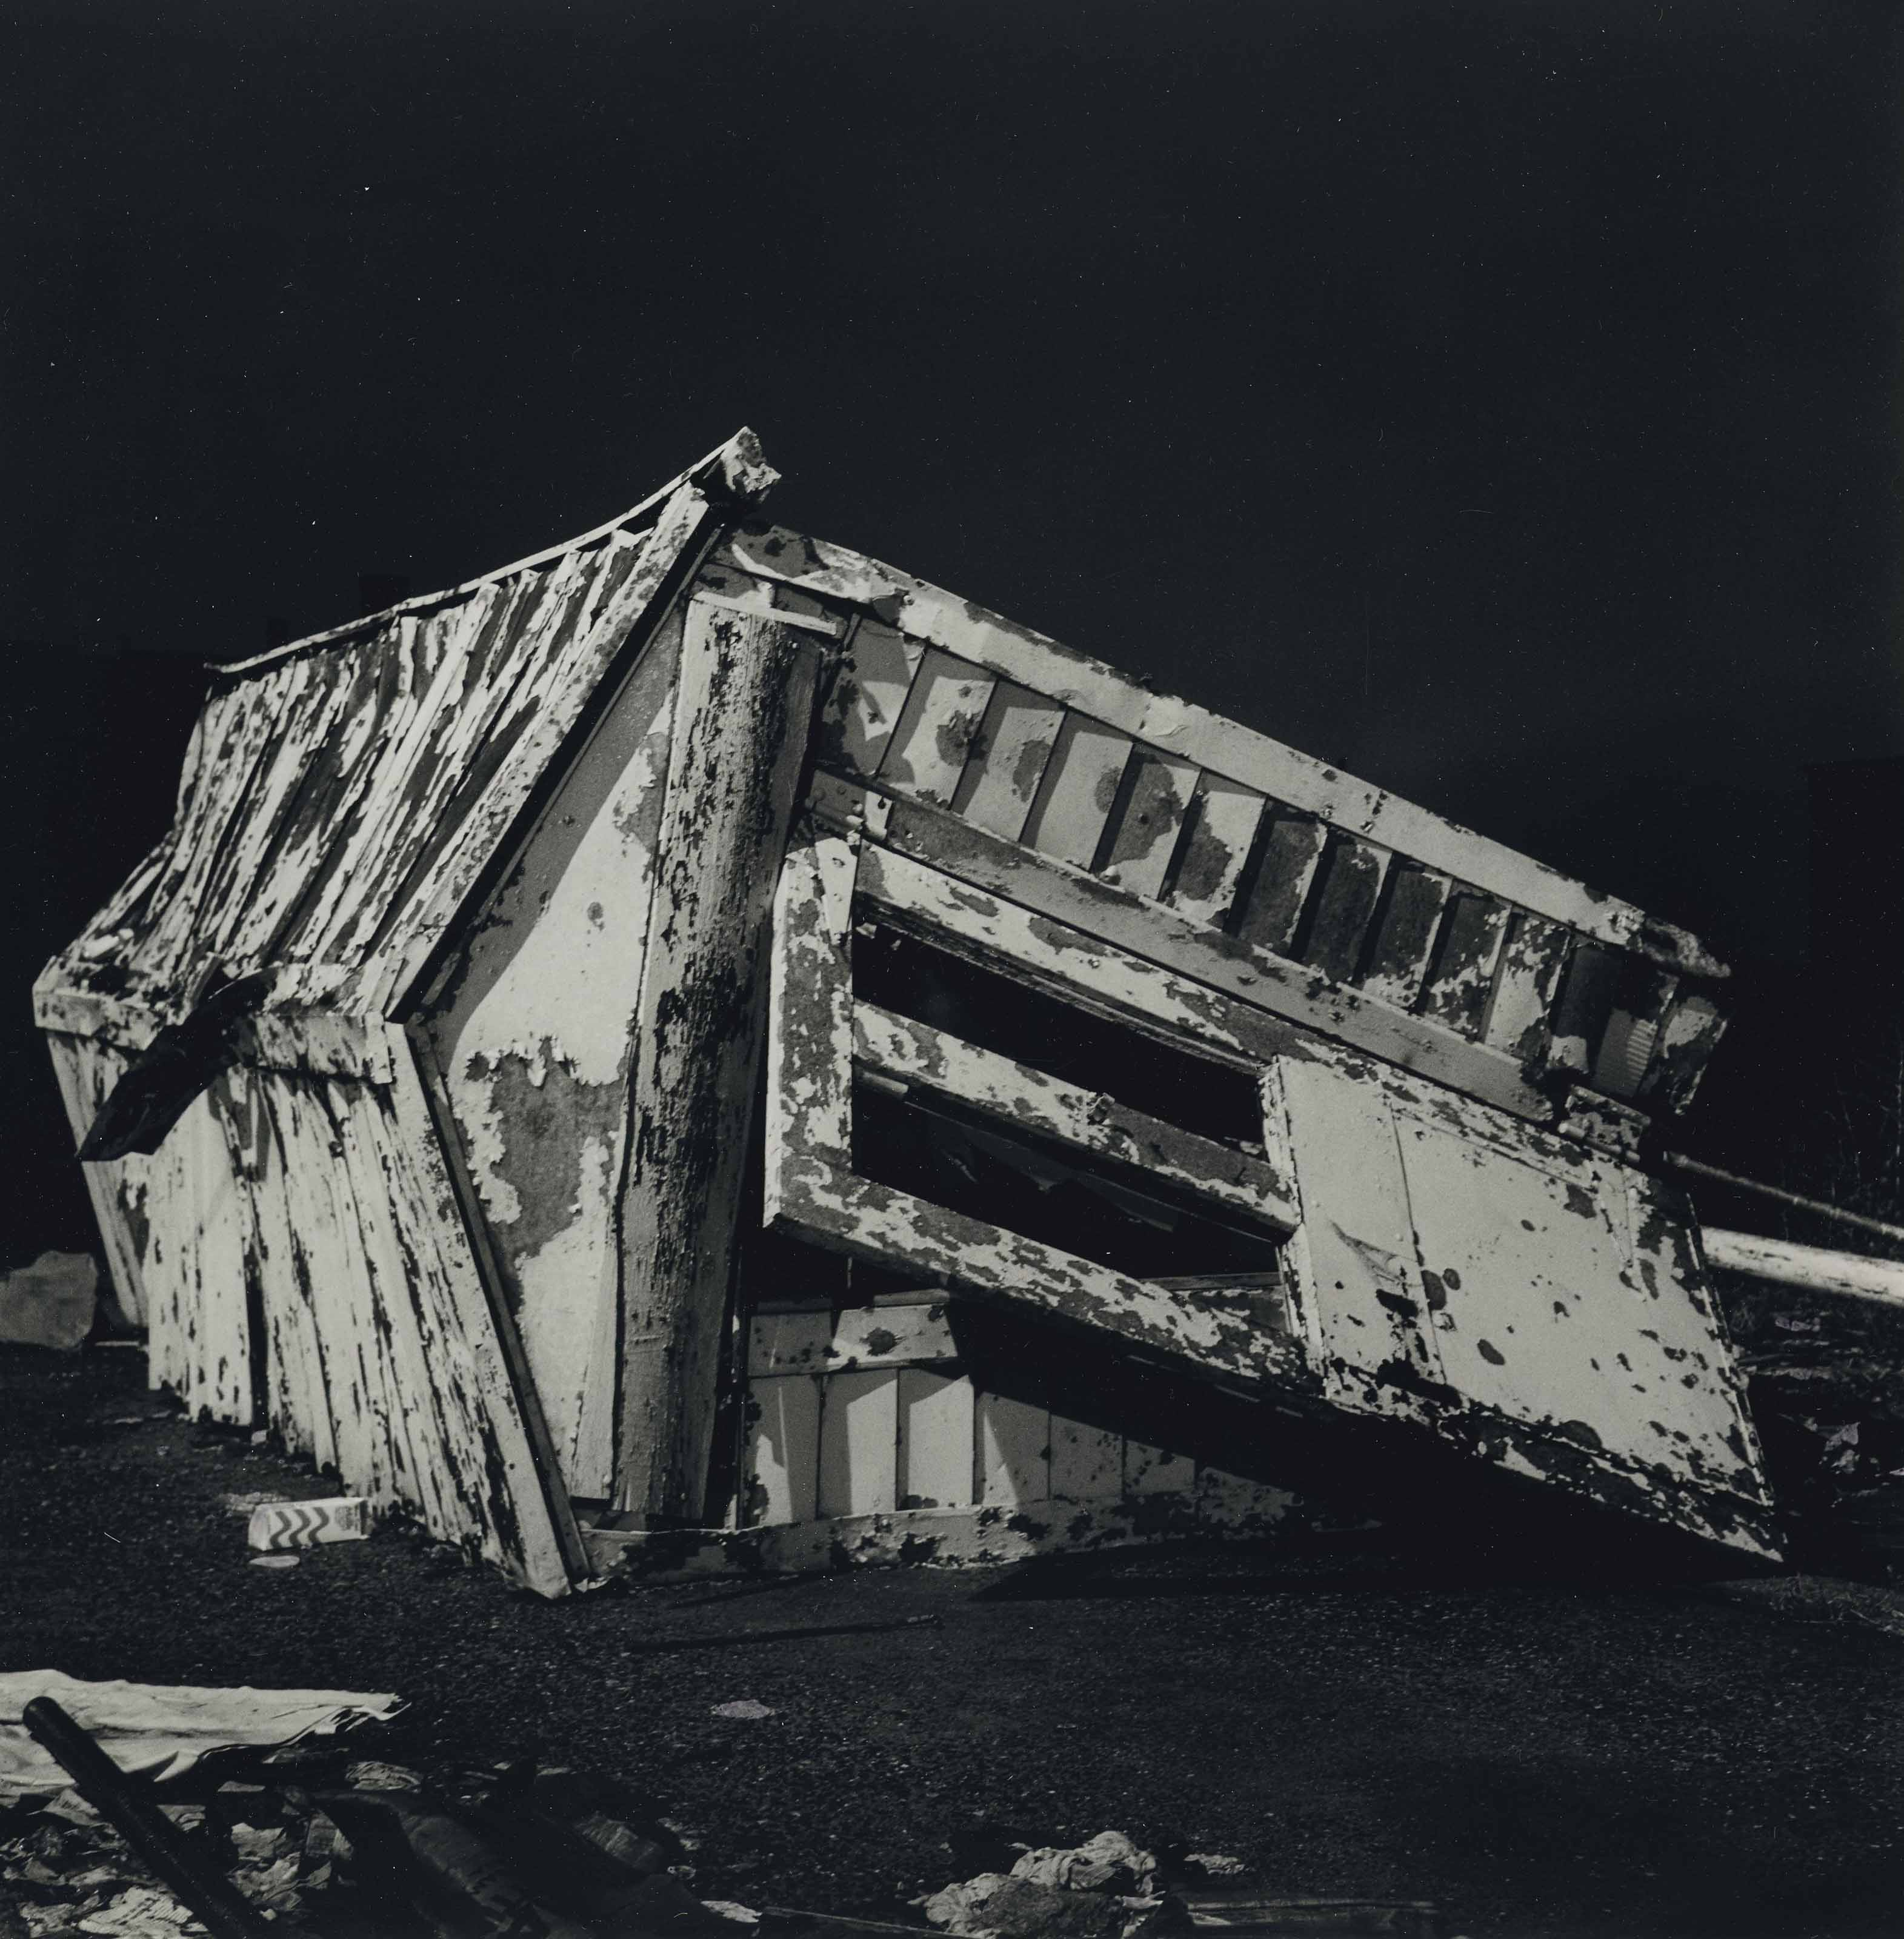 White House Collapsed, Queens, NYC, 1985